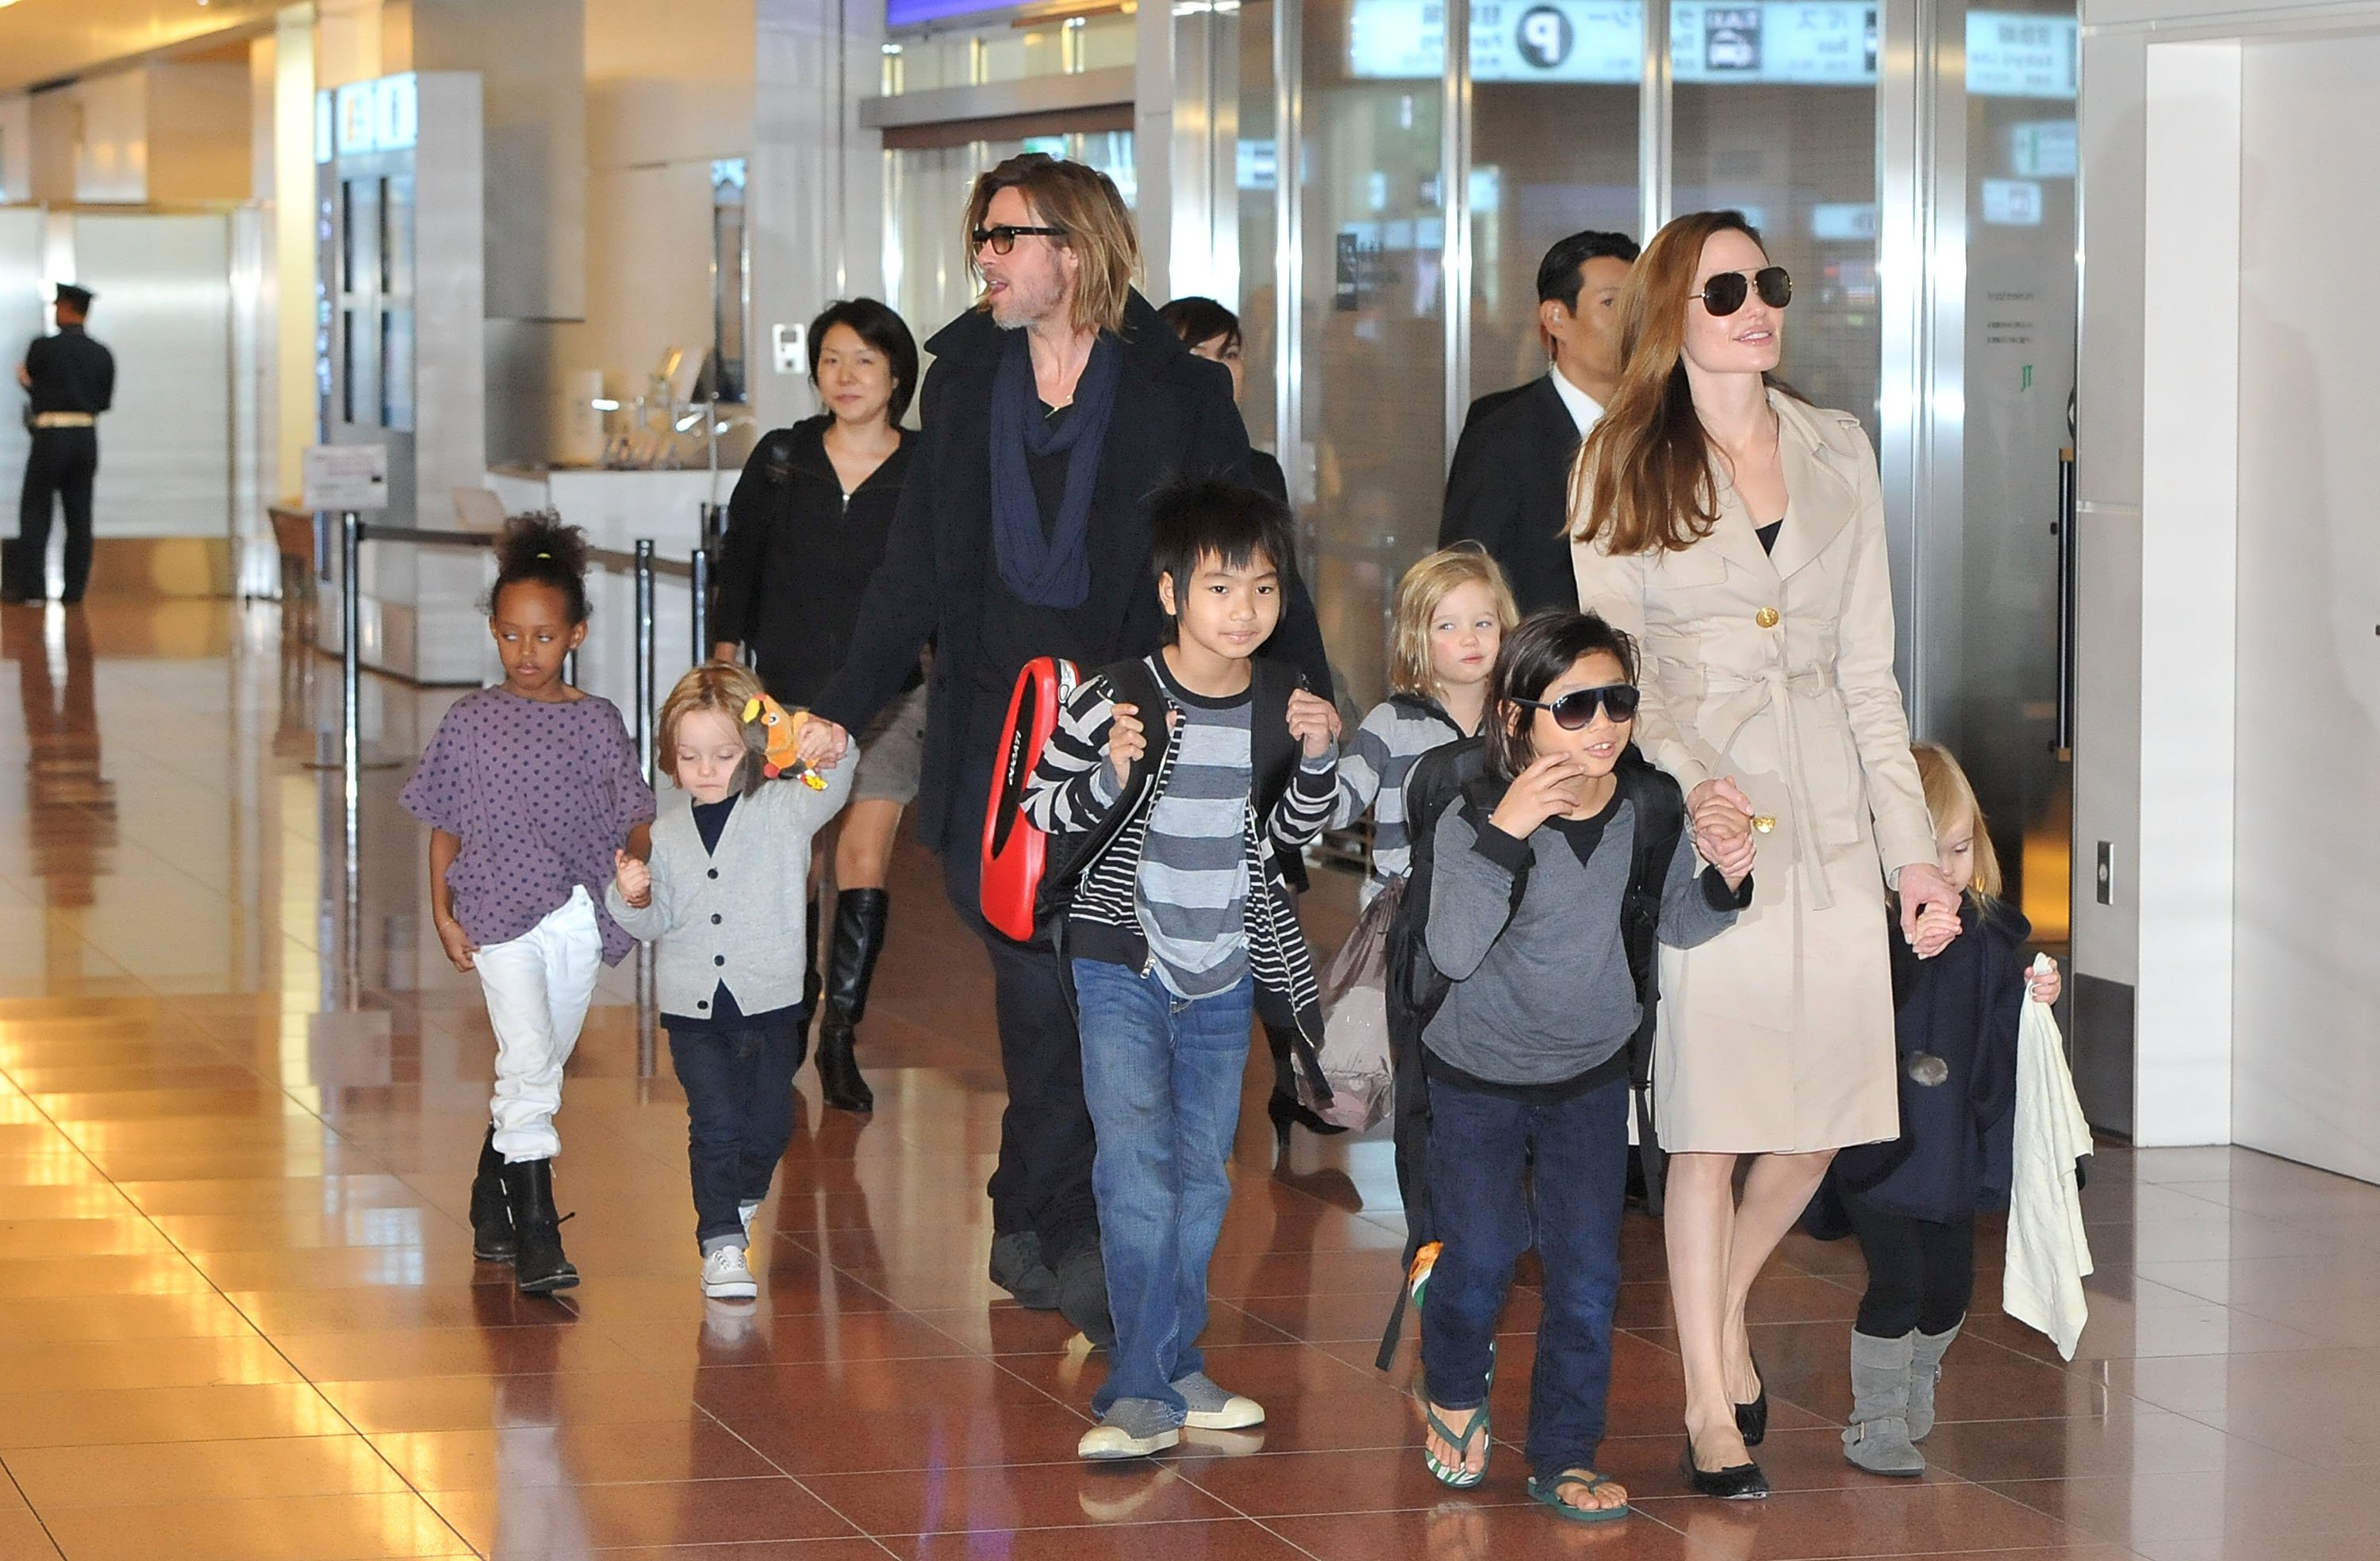 Brad Pitt, Angelina Jolie and their six children Maddox, Pax, Zahara, Shiloh, Knox, and Vivienne arrive at Haneda International Airport on November 8, 2011, in Tokyo, Japan. | Source: Getty Images.